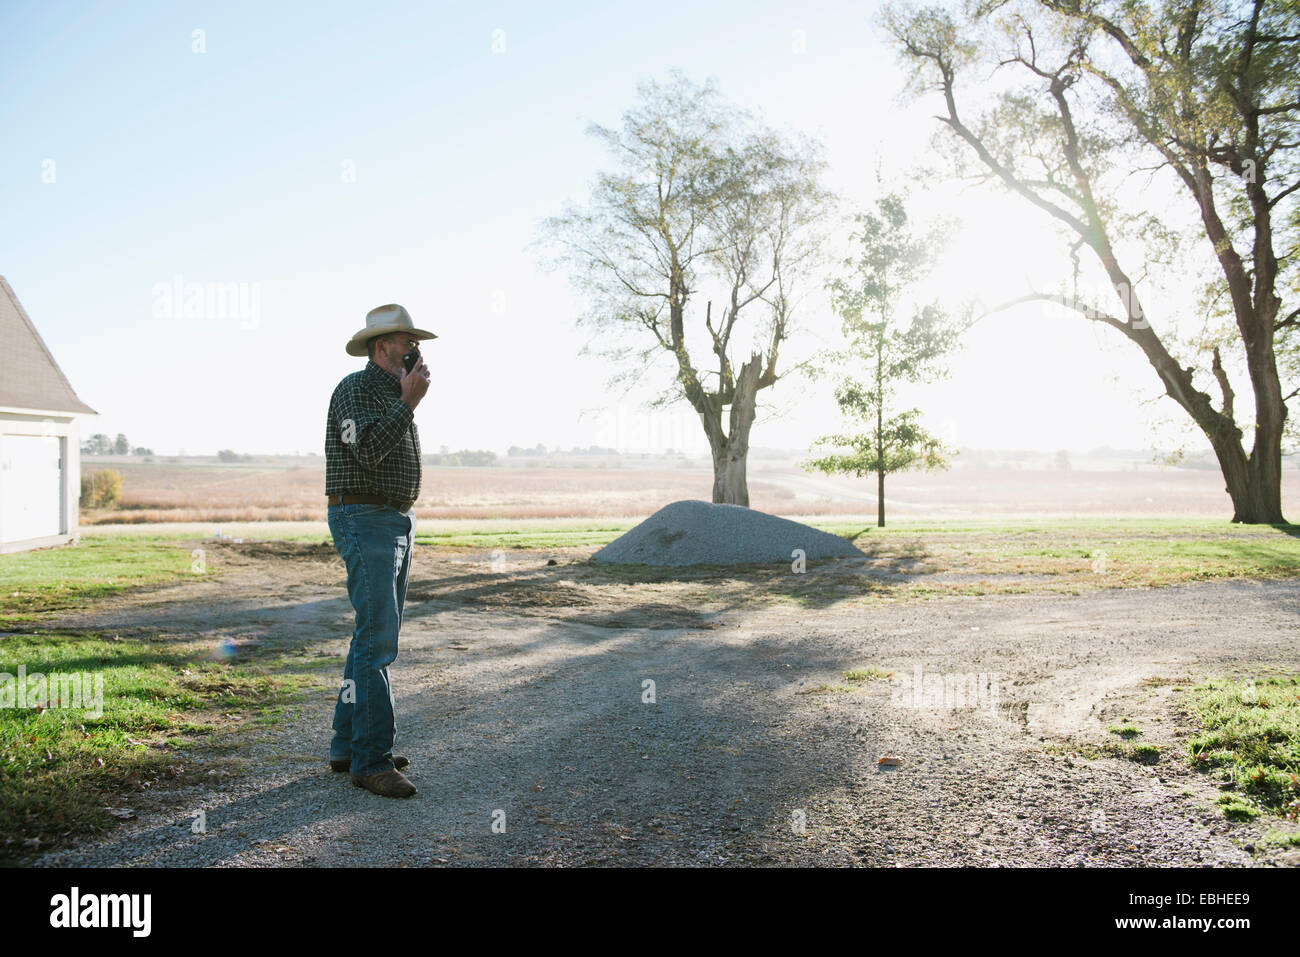 Senior male farmer chatting on smartphone on dirt track, Plattsburg, Missouri, USA - Stock Image